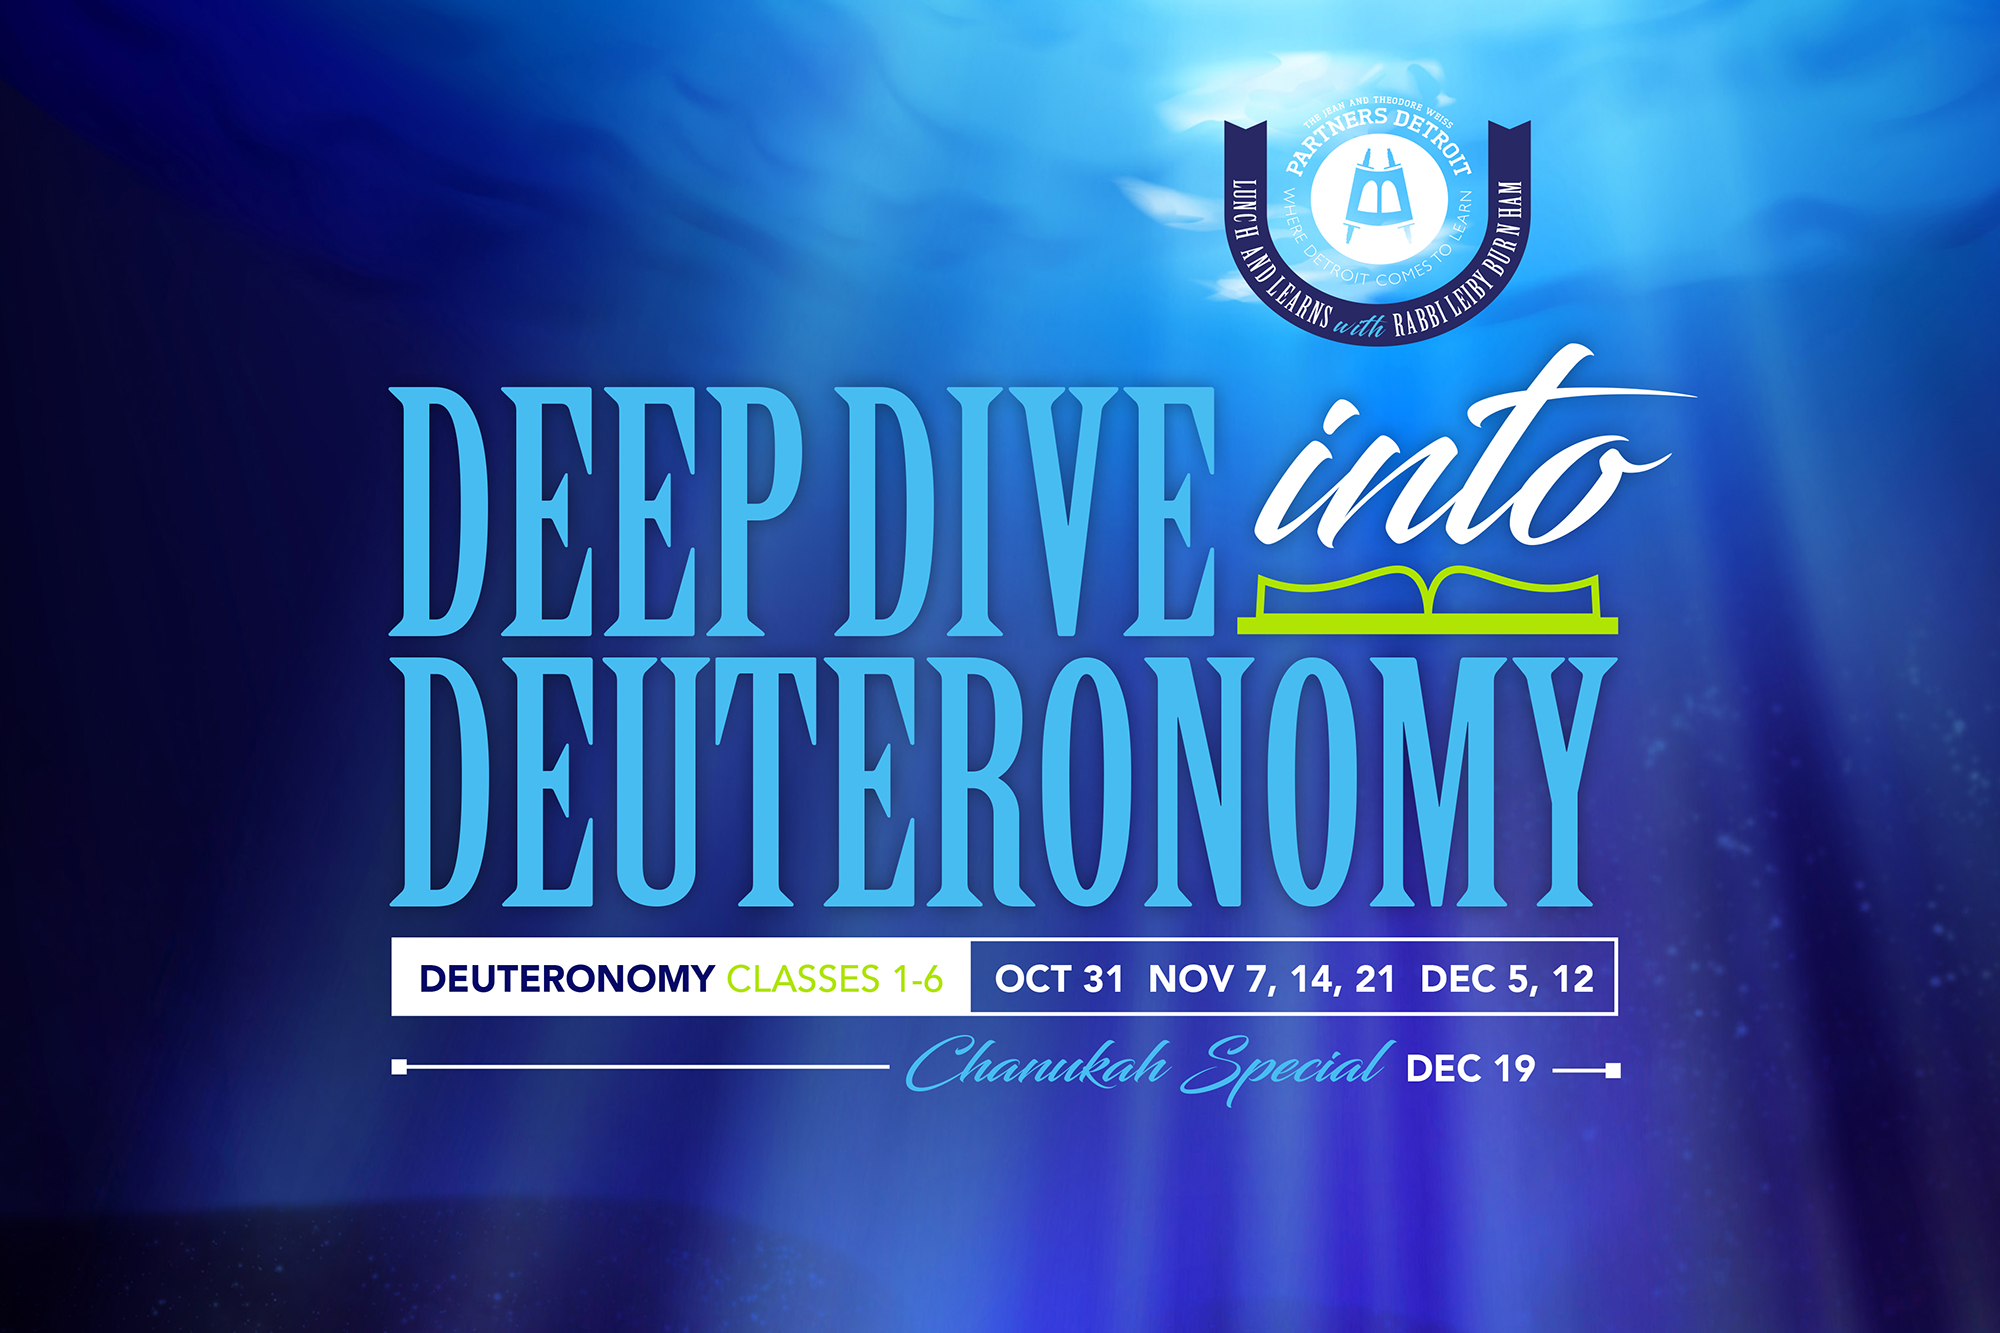 Deep Dive into Deuteronomy Part I Lunch 'n Learn